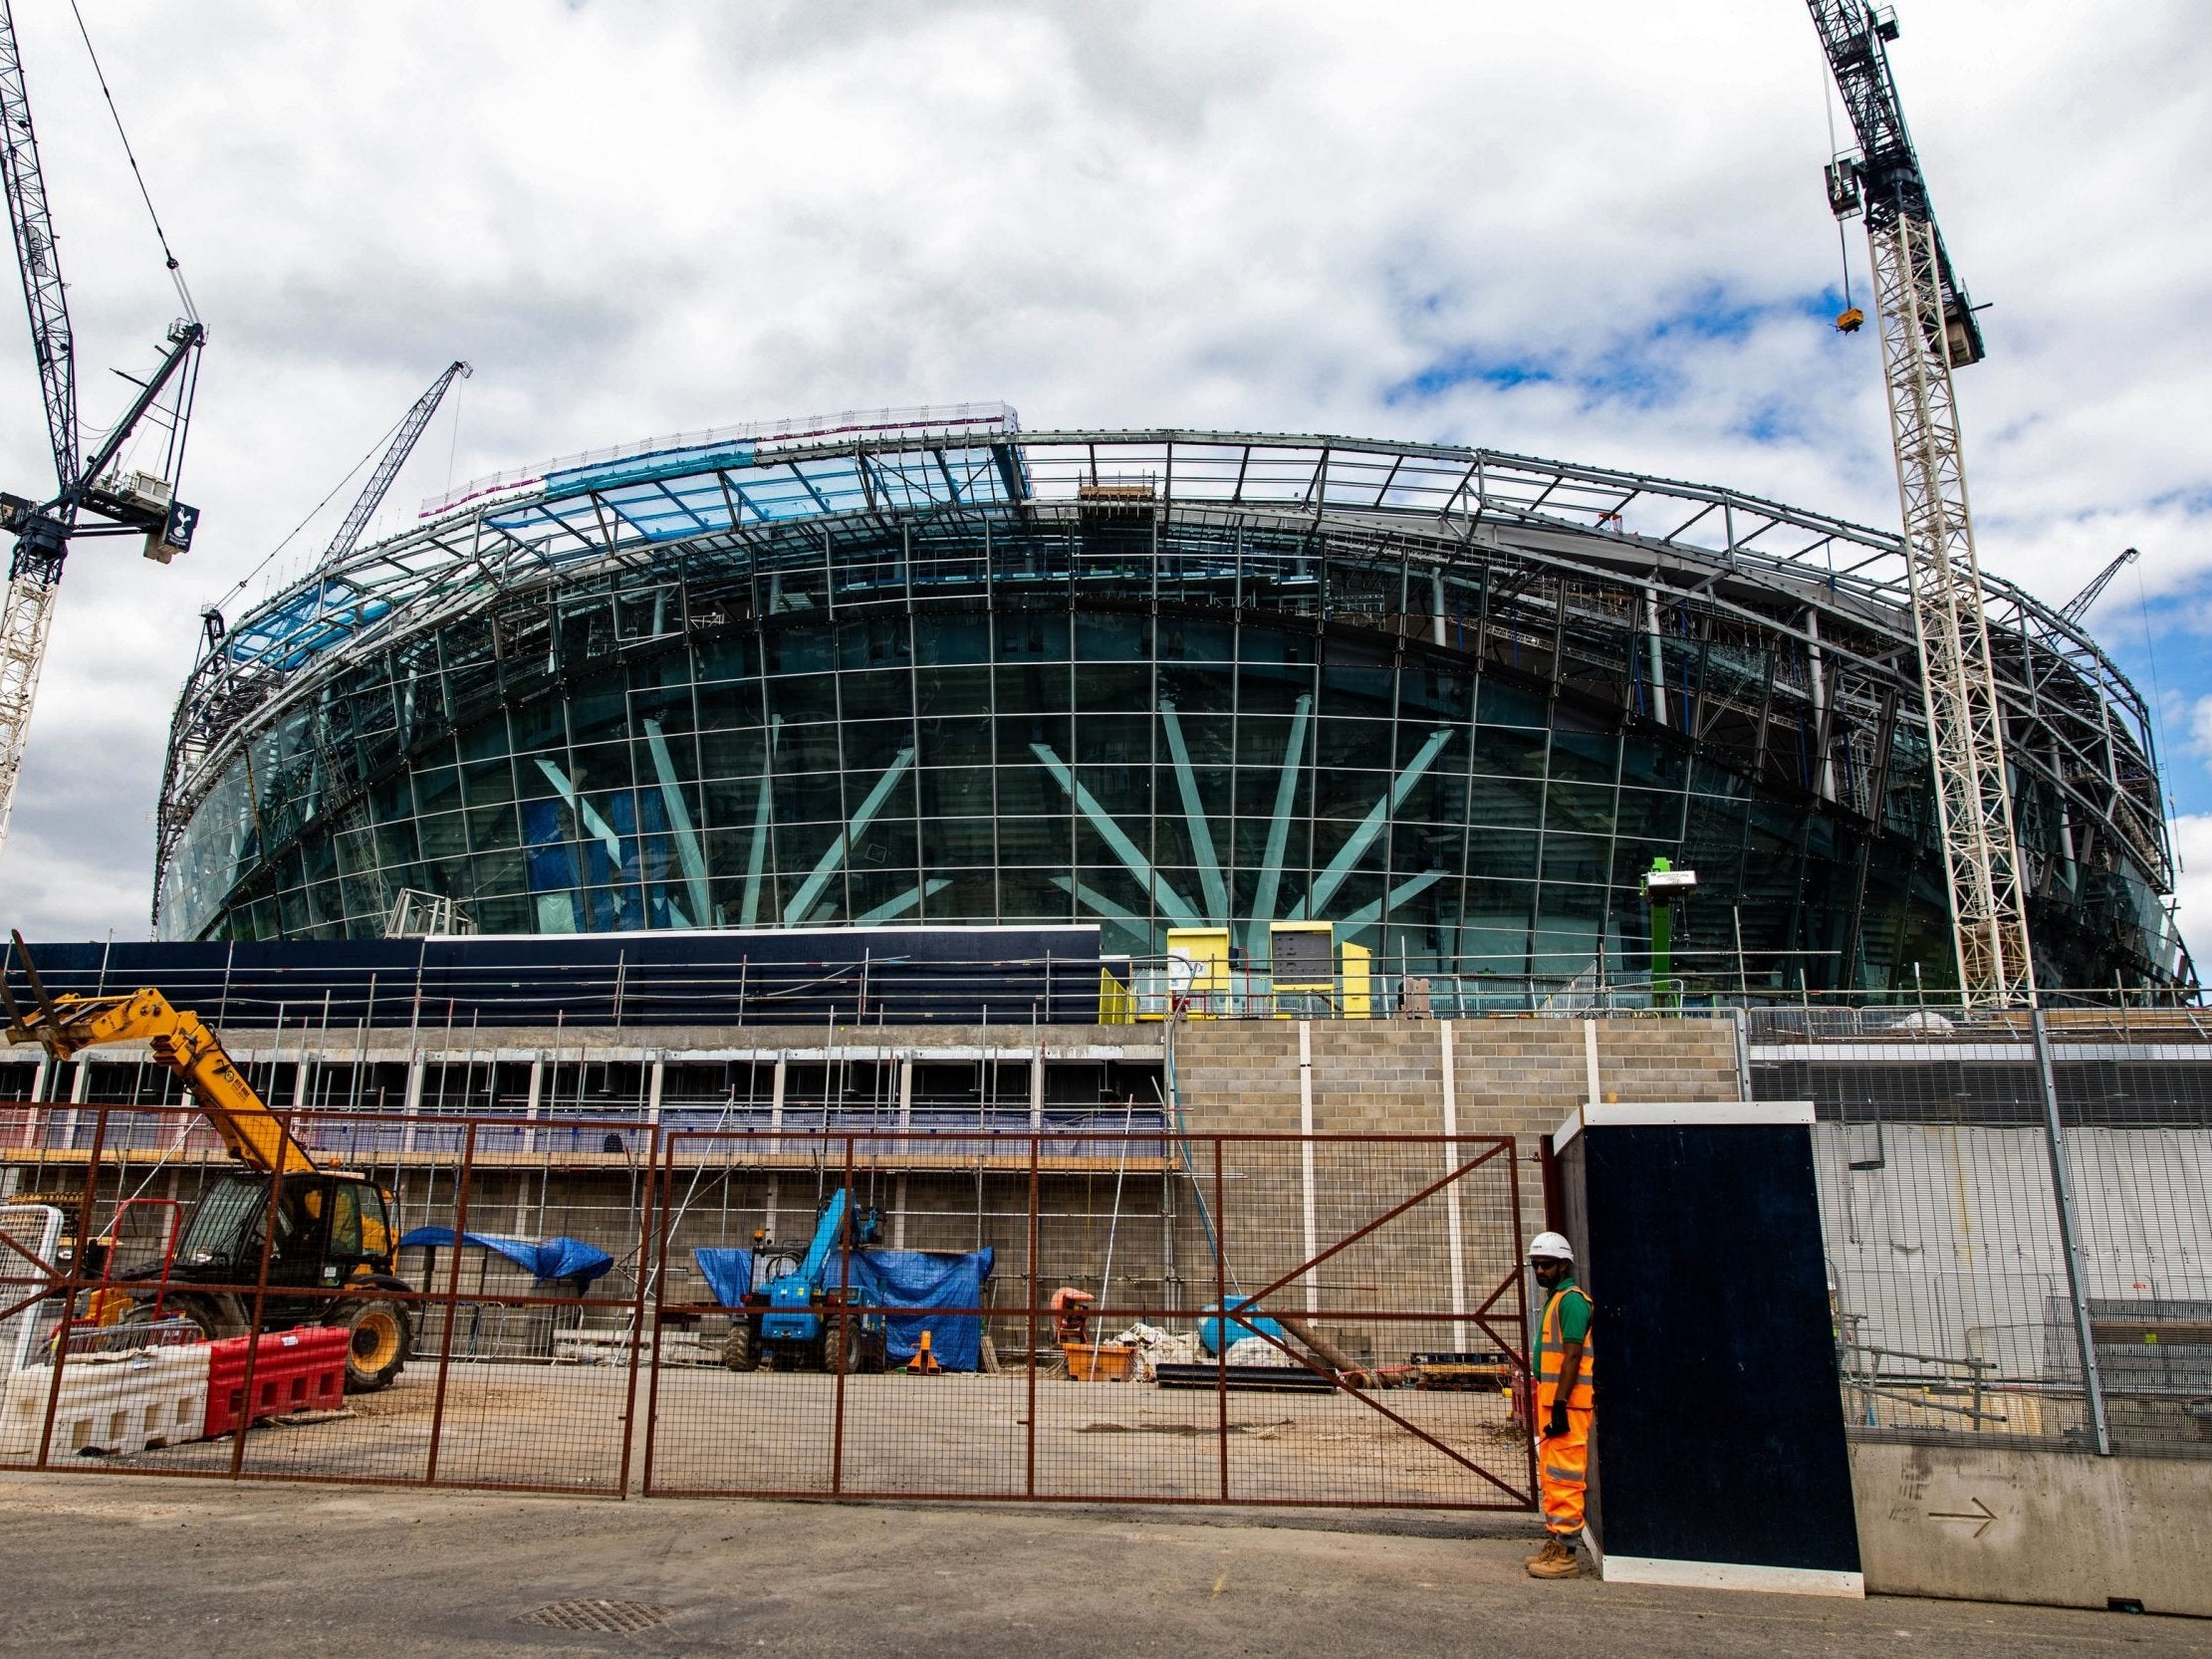 New Tottenham Stadium Spurs Move Manchester City Game To Wembley As Work Continues The Independent The Independent